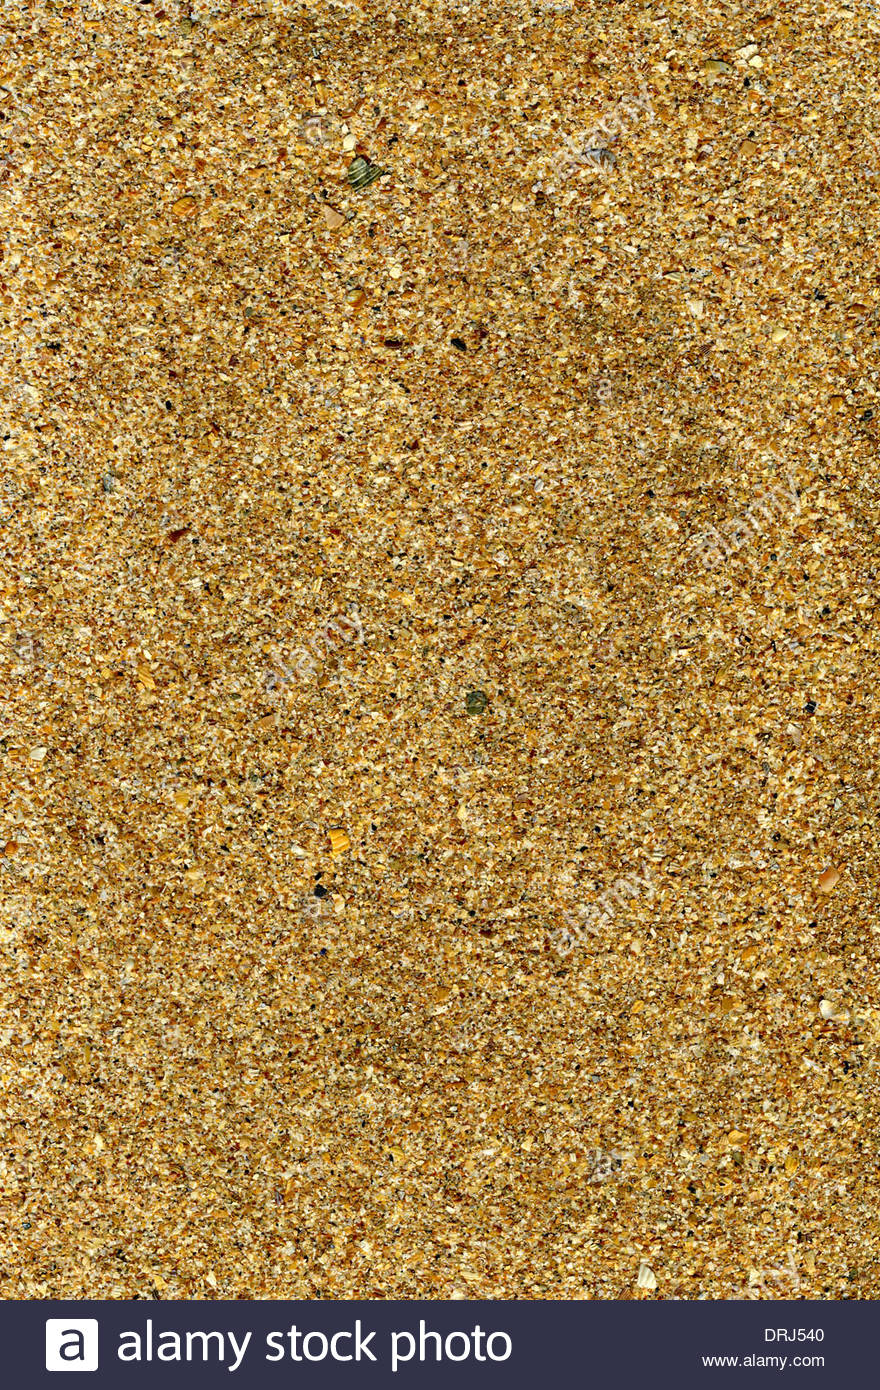 sand texture background with shell pieces great detail - Stock Image